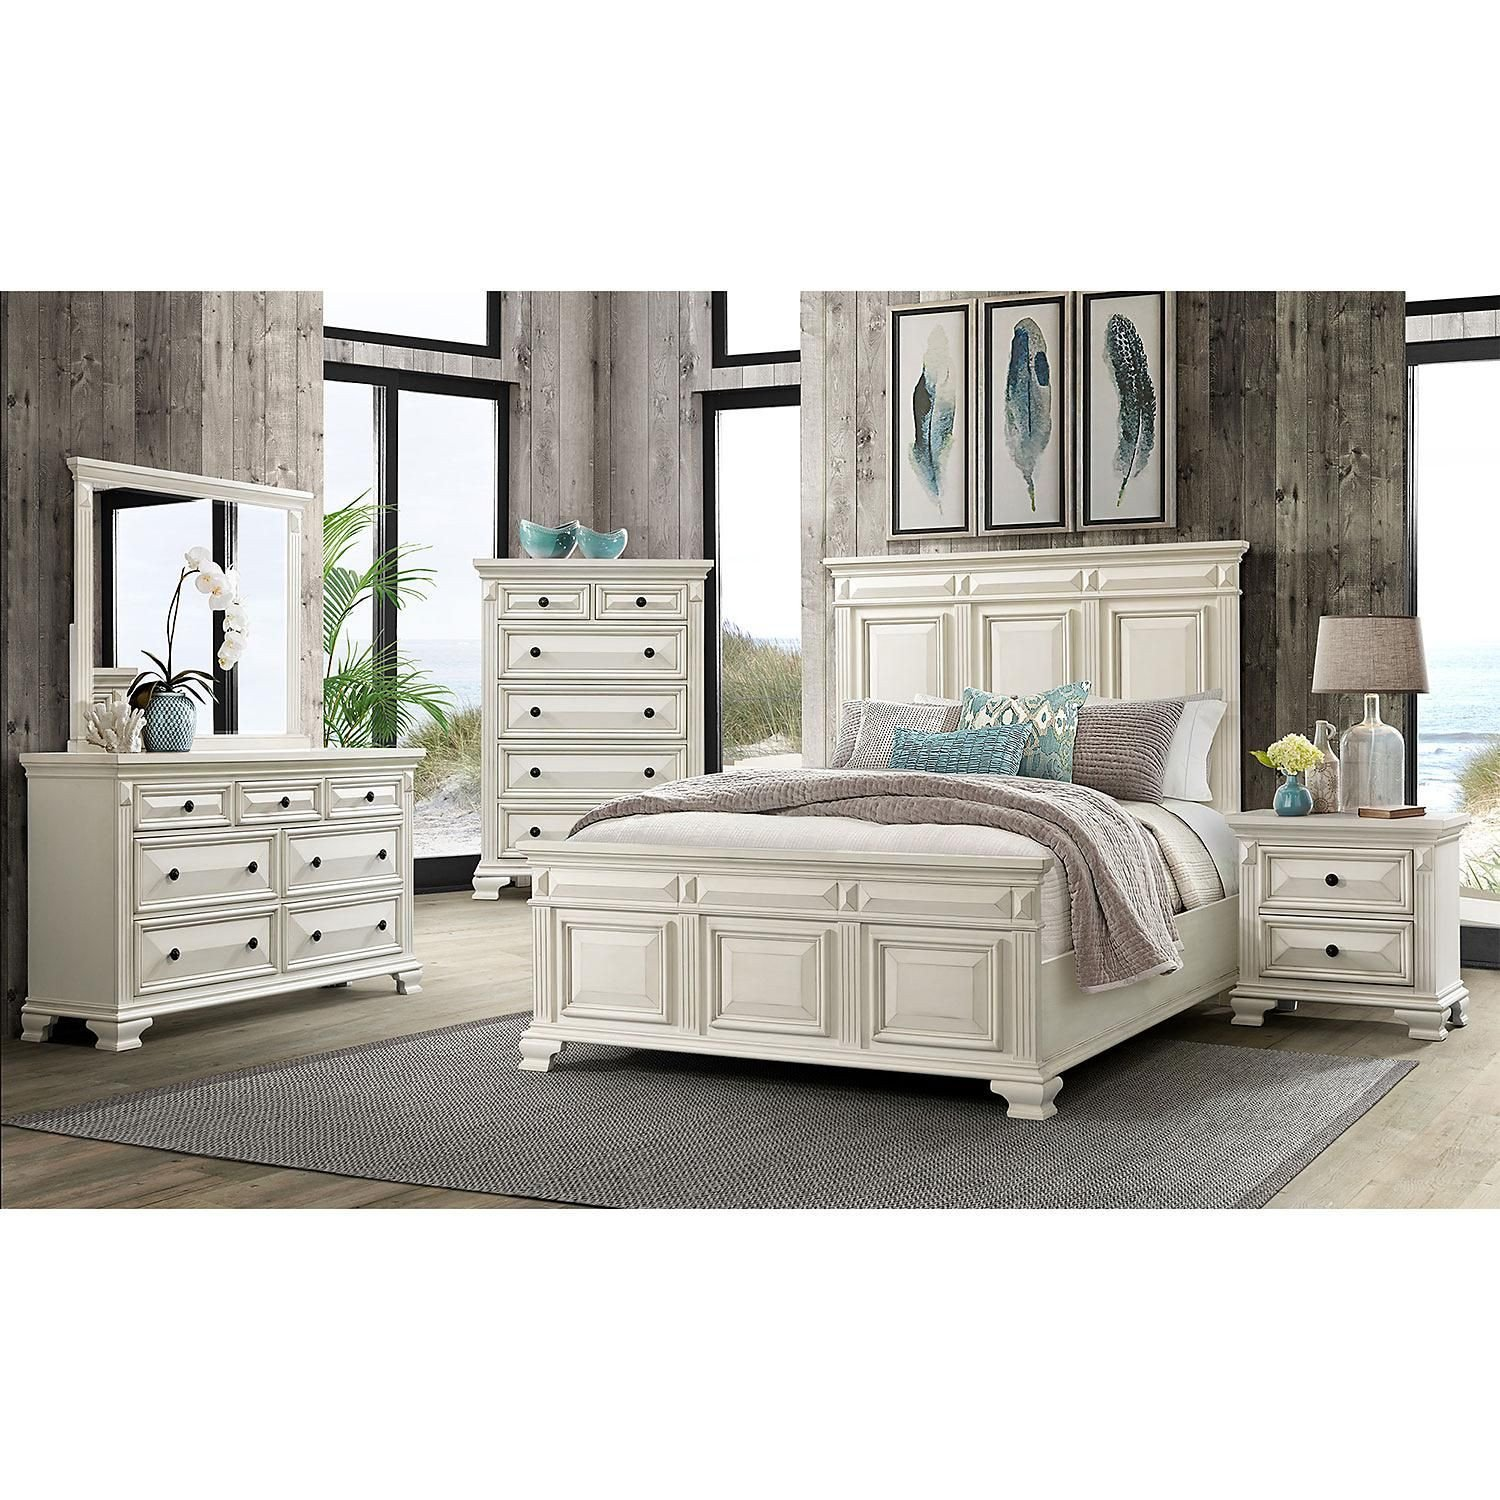 King Bedroom Furniture Set New $1599 00 society Den Trent Panel 6 Piece King Bedroom Set